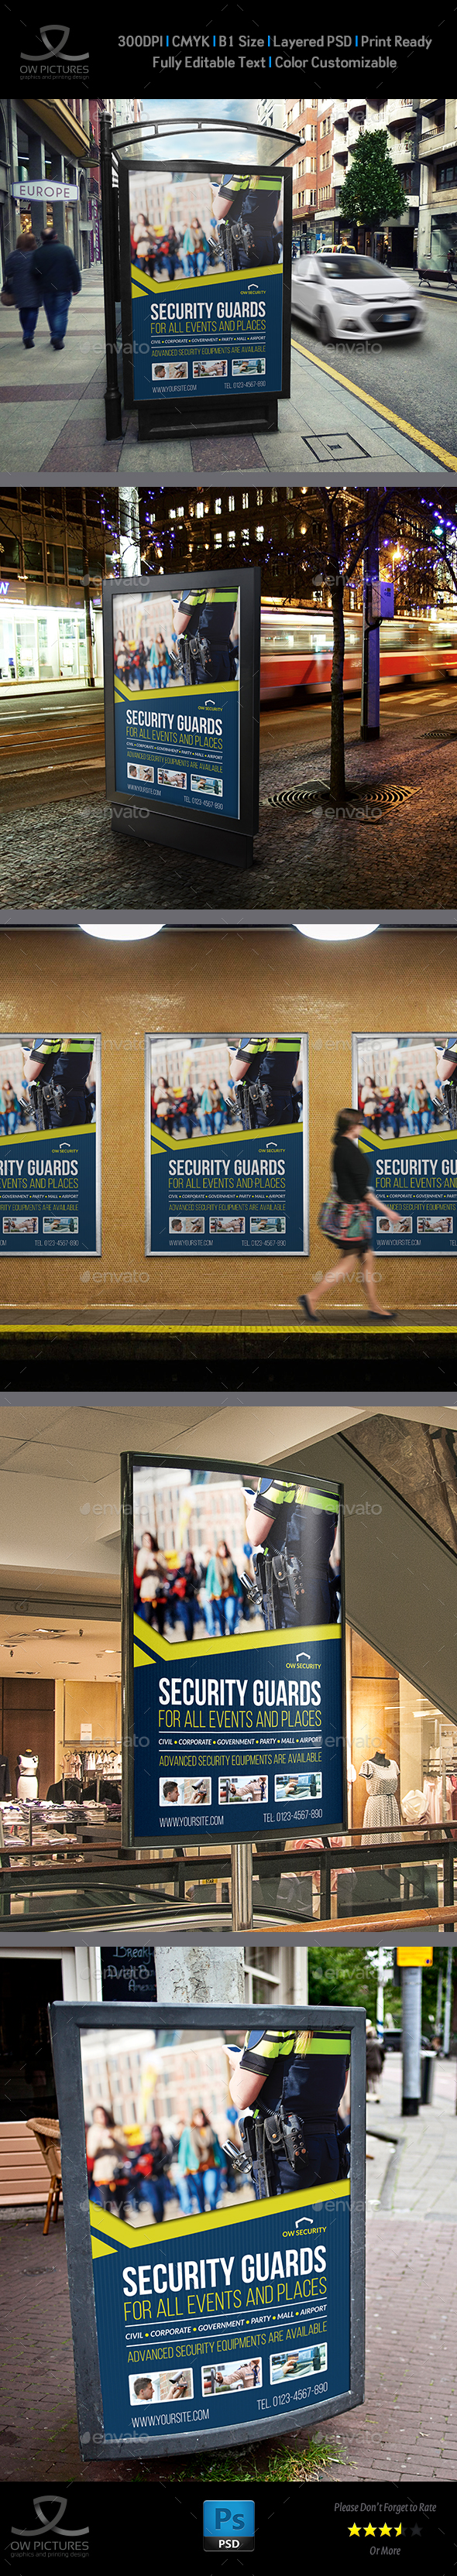 Security Guards Poster Template - Signage Print Templates